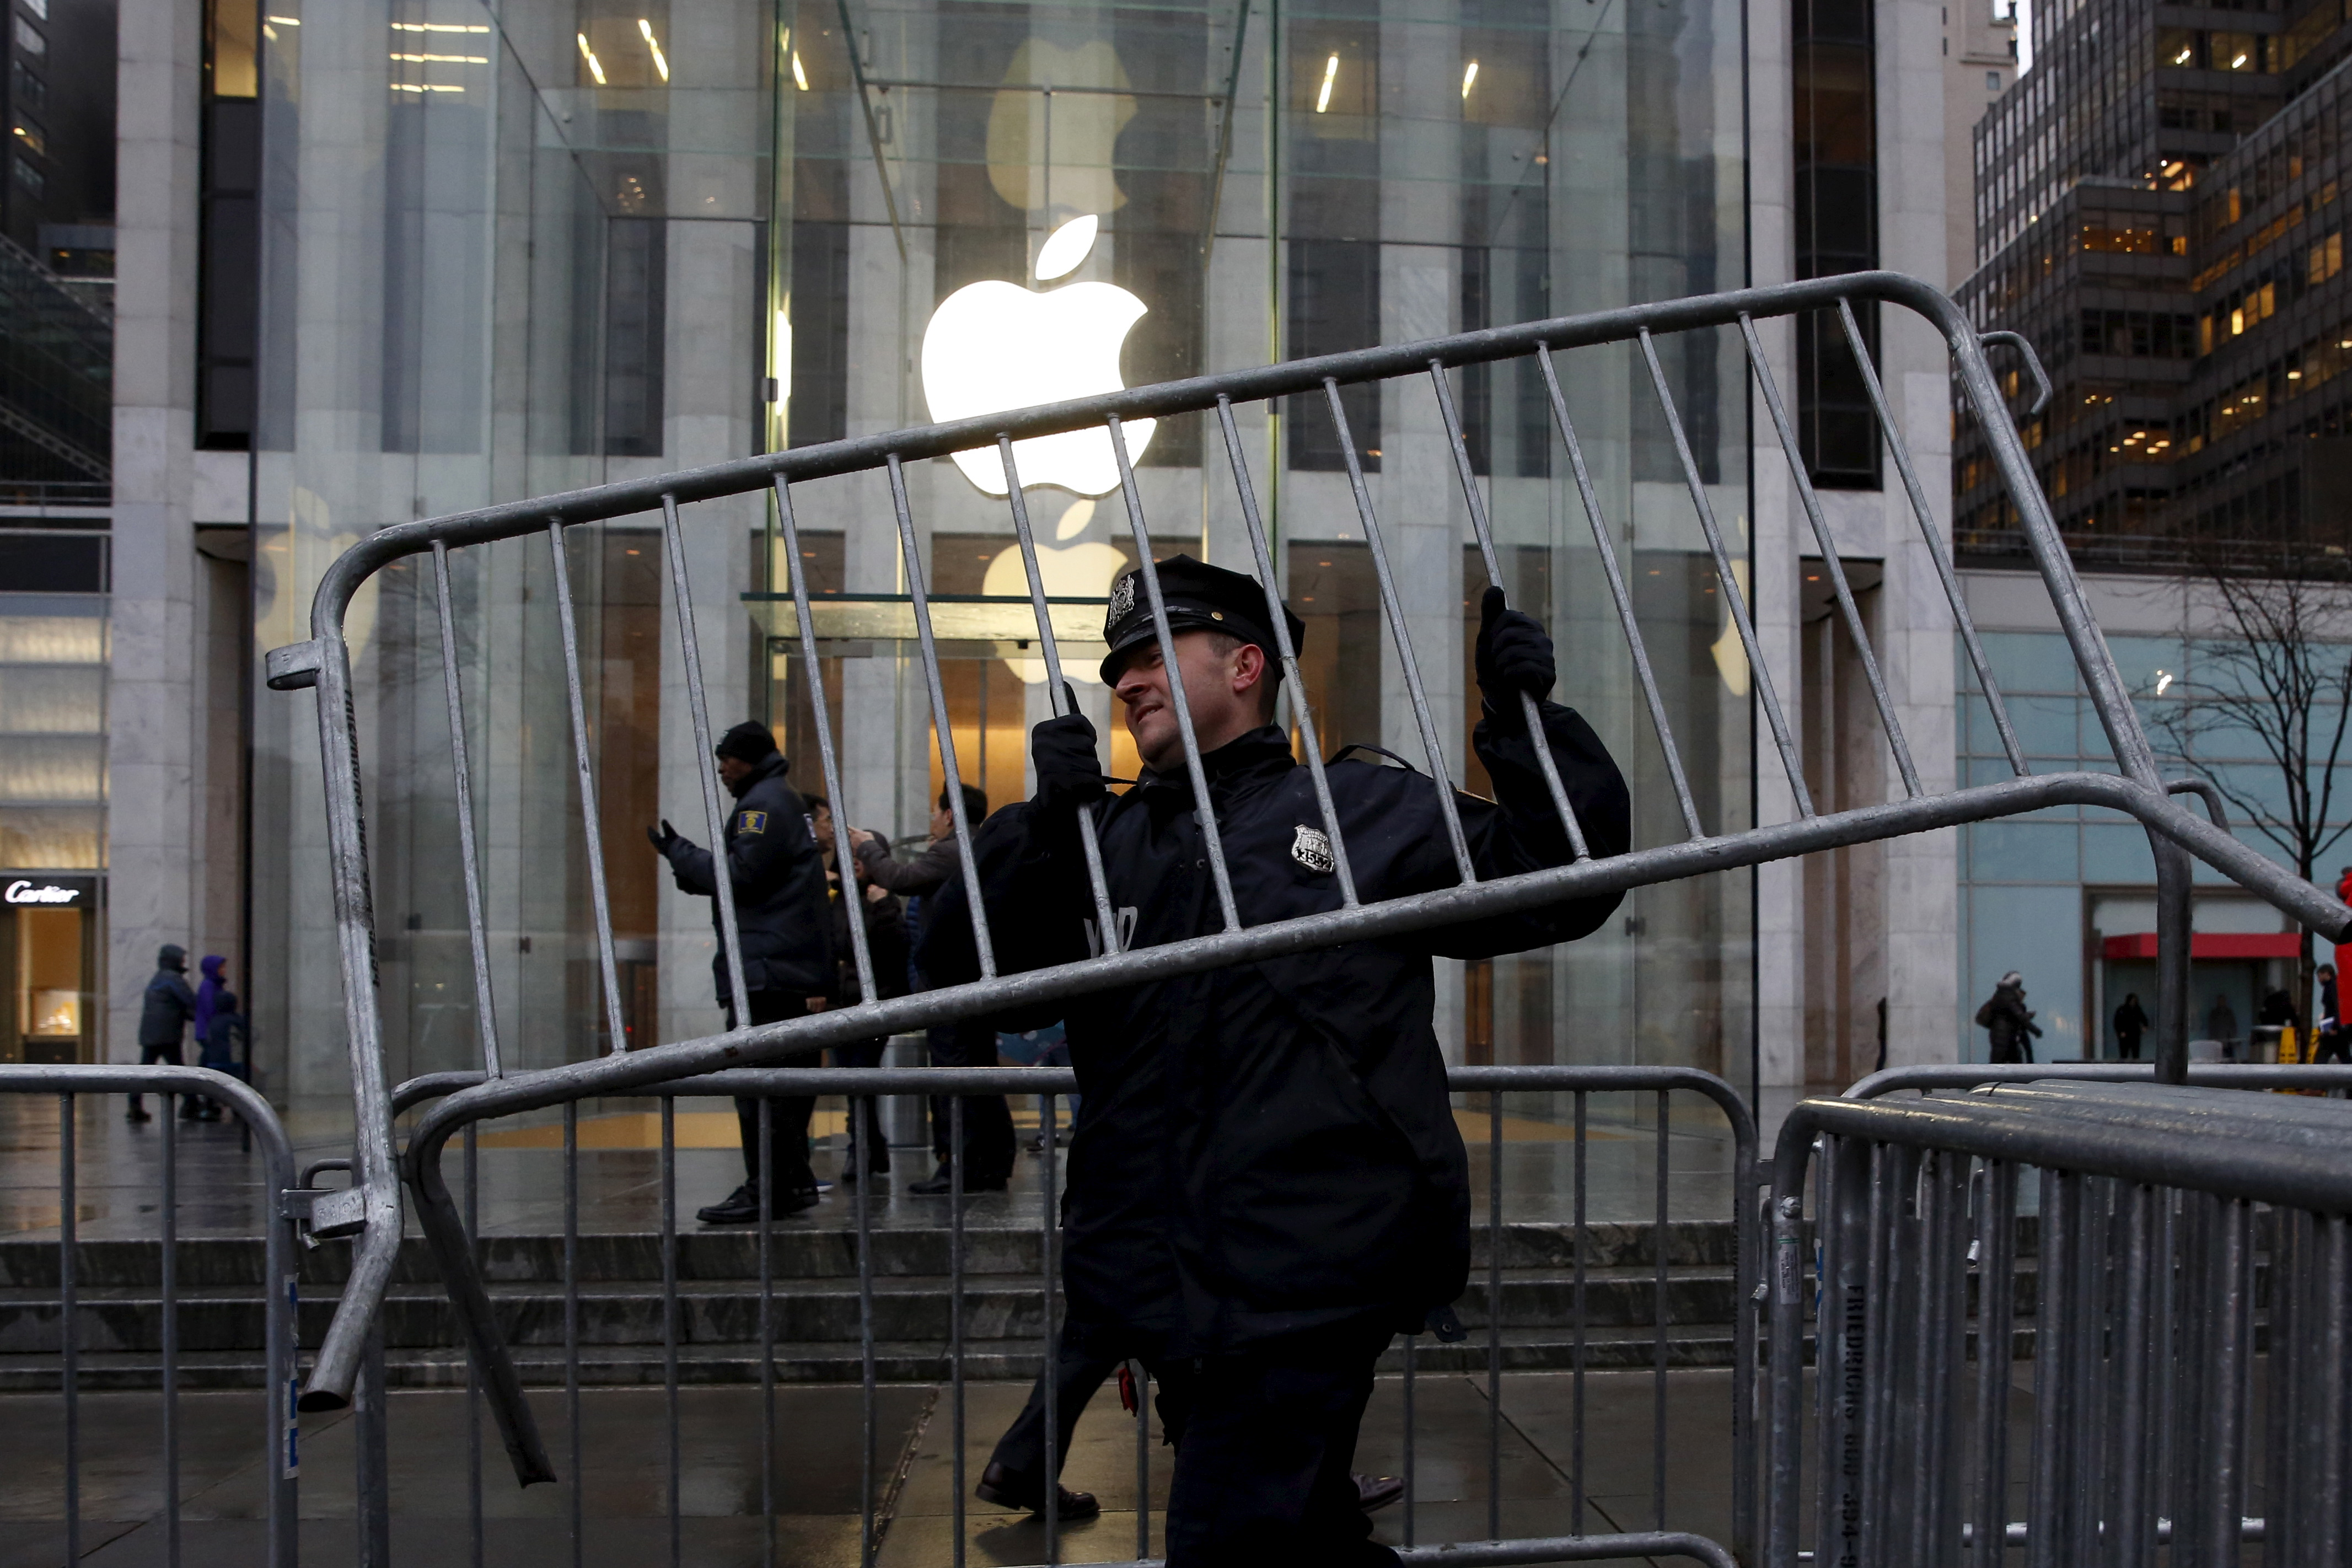 A NYPD officer carries a barrier outside the Apple Store in New York